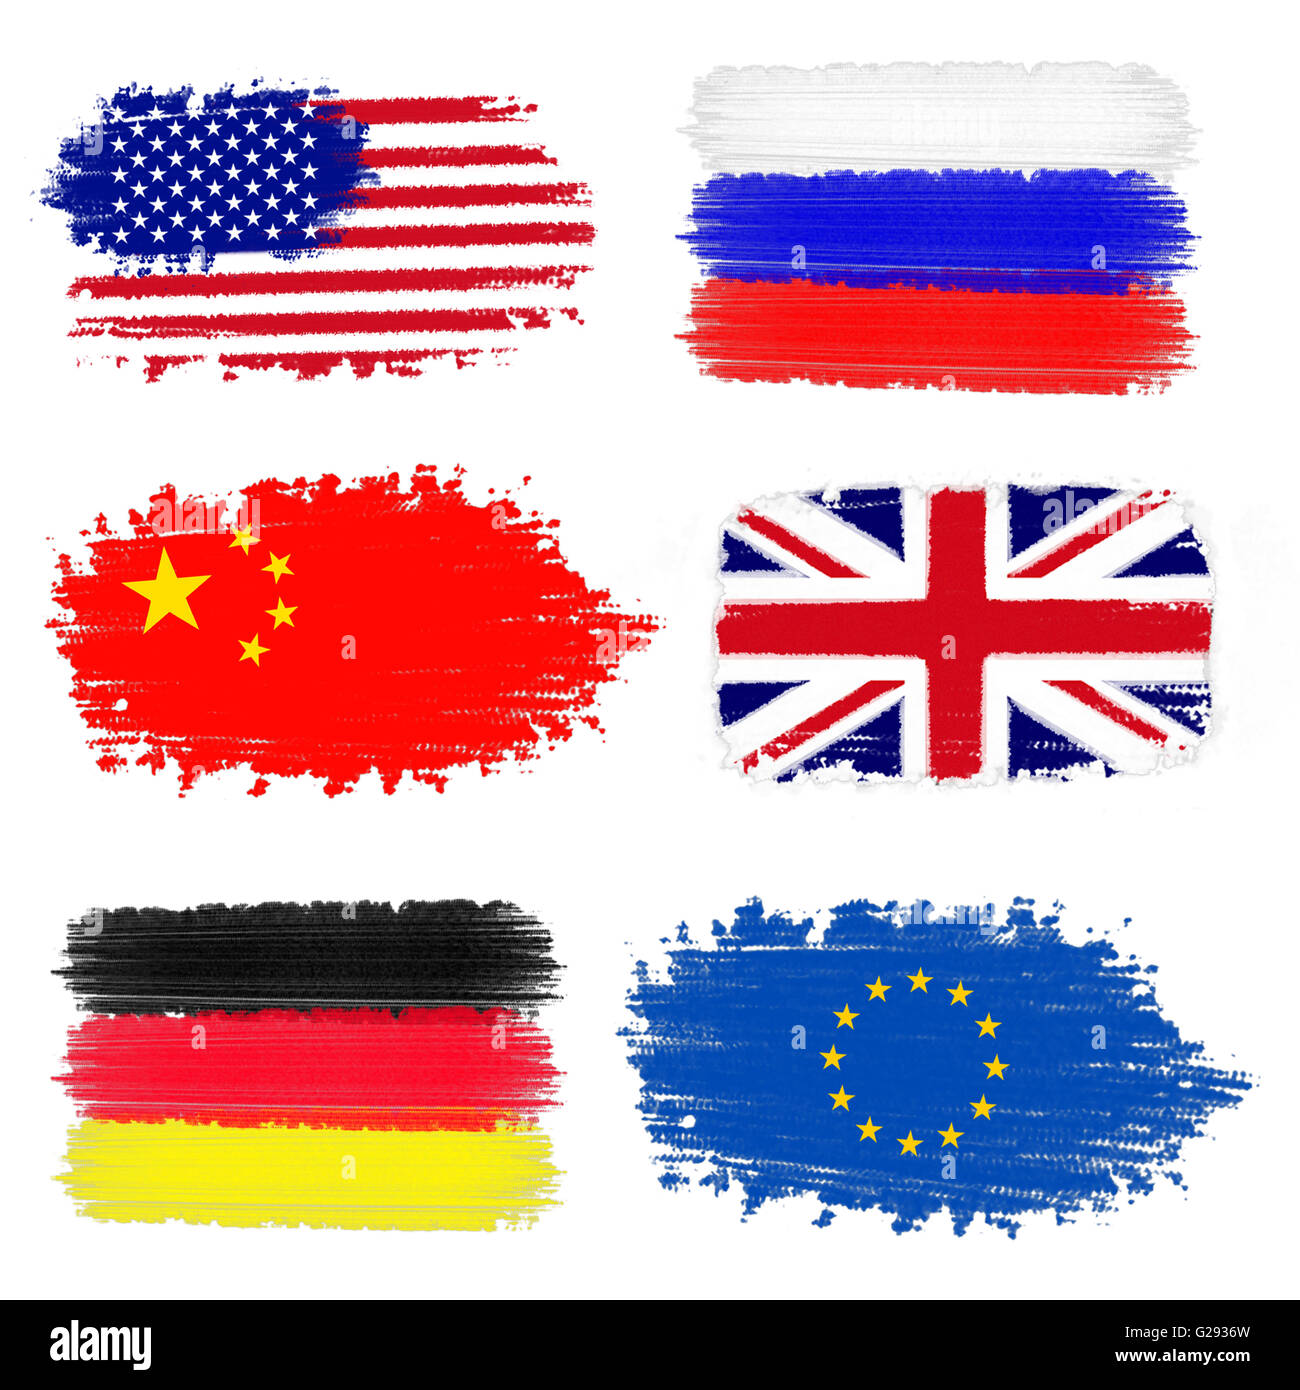 Collection of flags including USA, China, Russia, United Kingdom, Germany and European Union - Stock Image